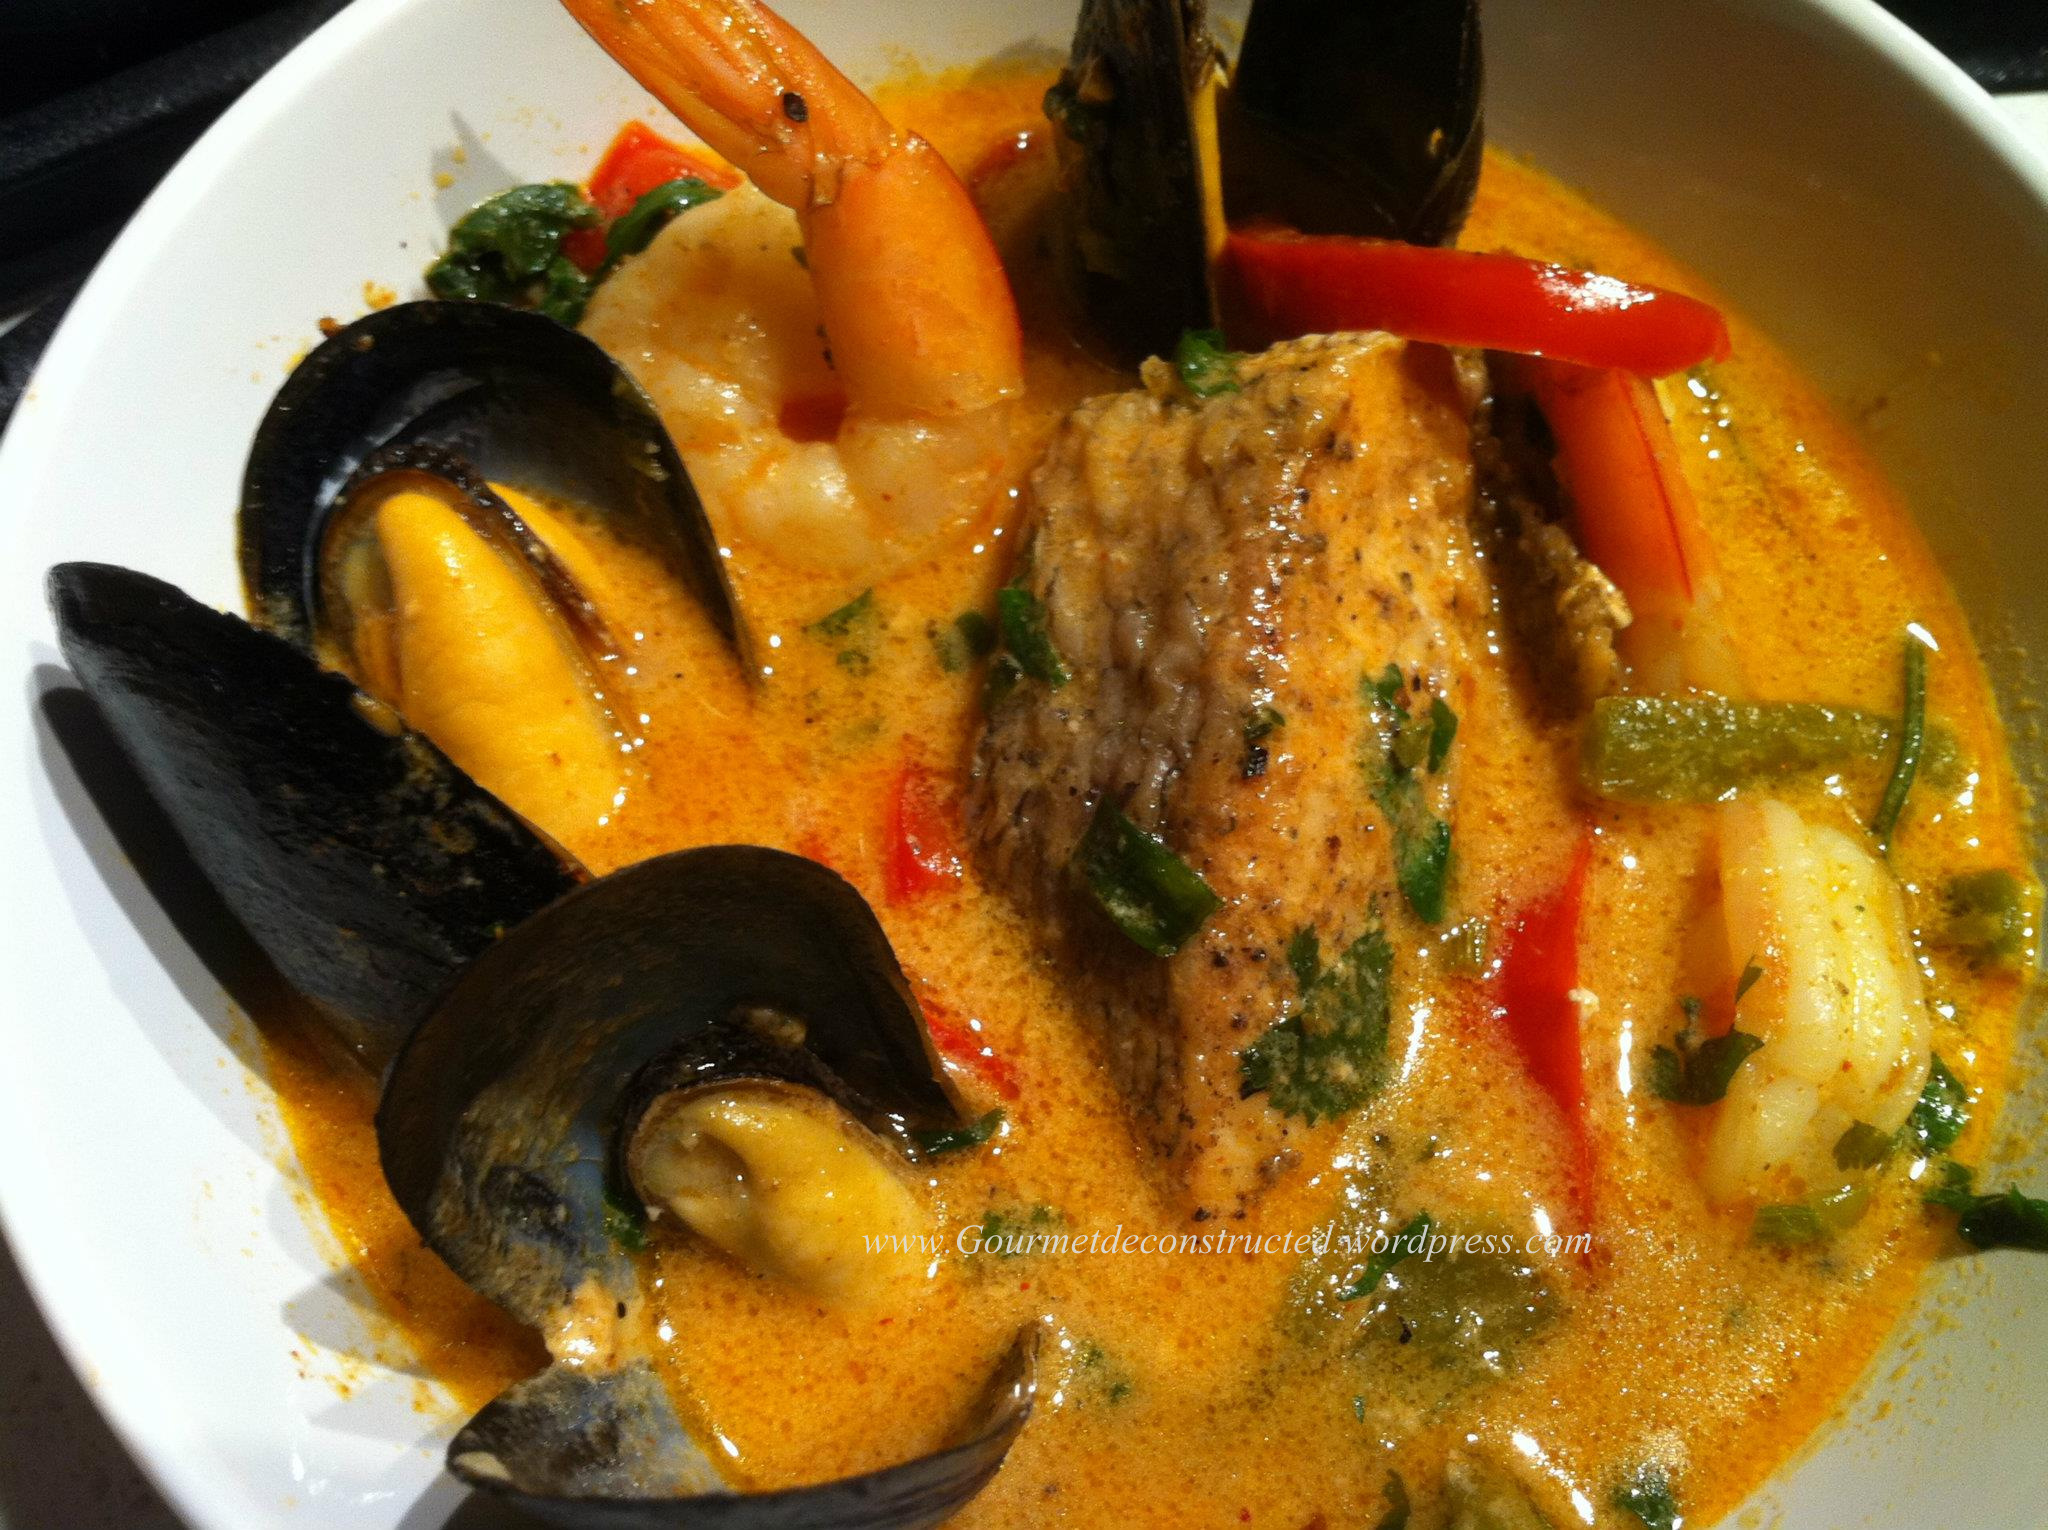 Seafood in Red Coconut Curry (Thai style) | Gourmet De-Constructed